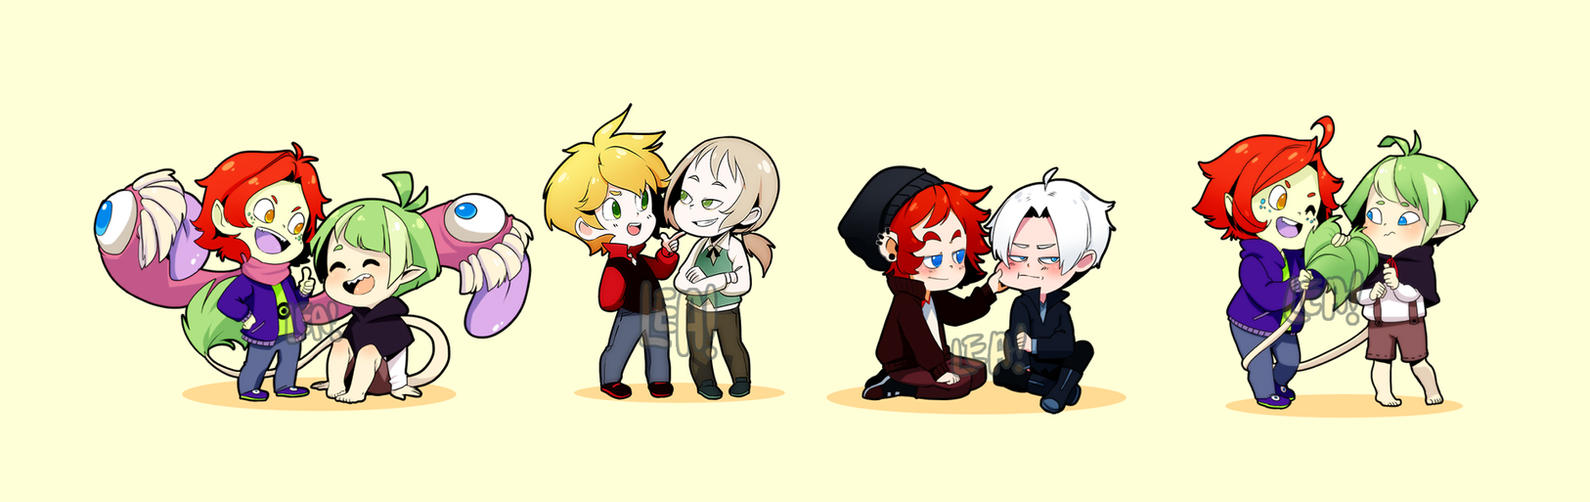 Some lovely love in chibi form by Leaglem on DeviantArt